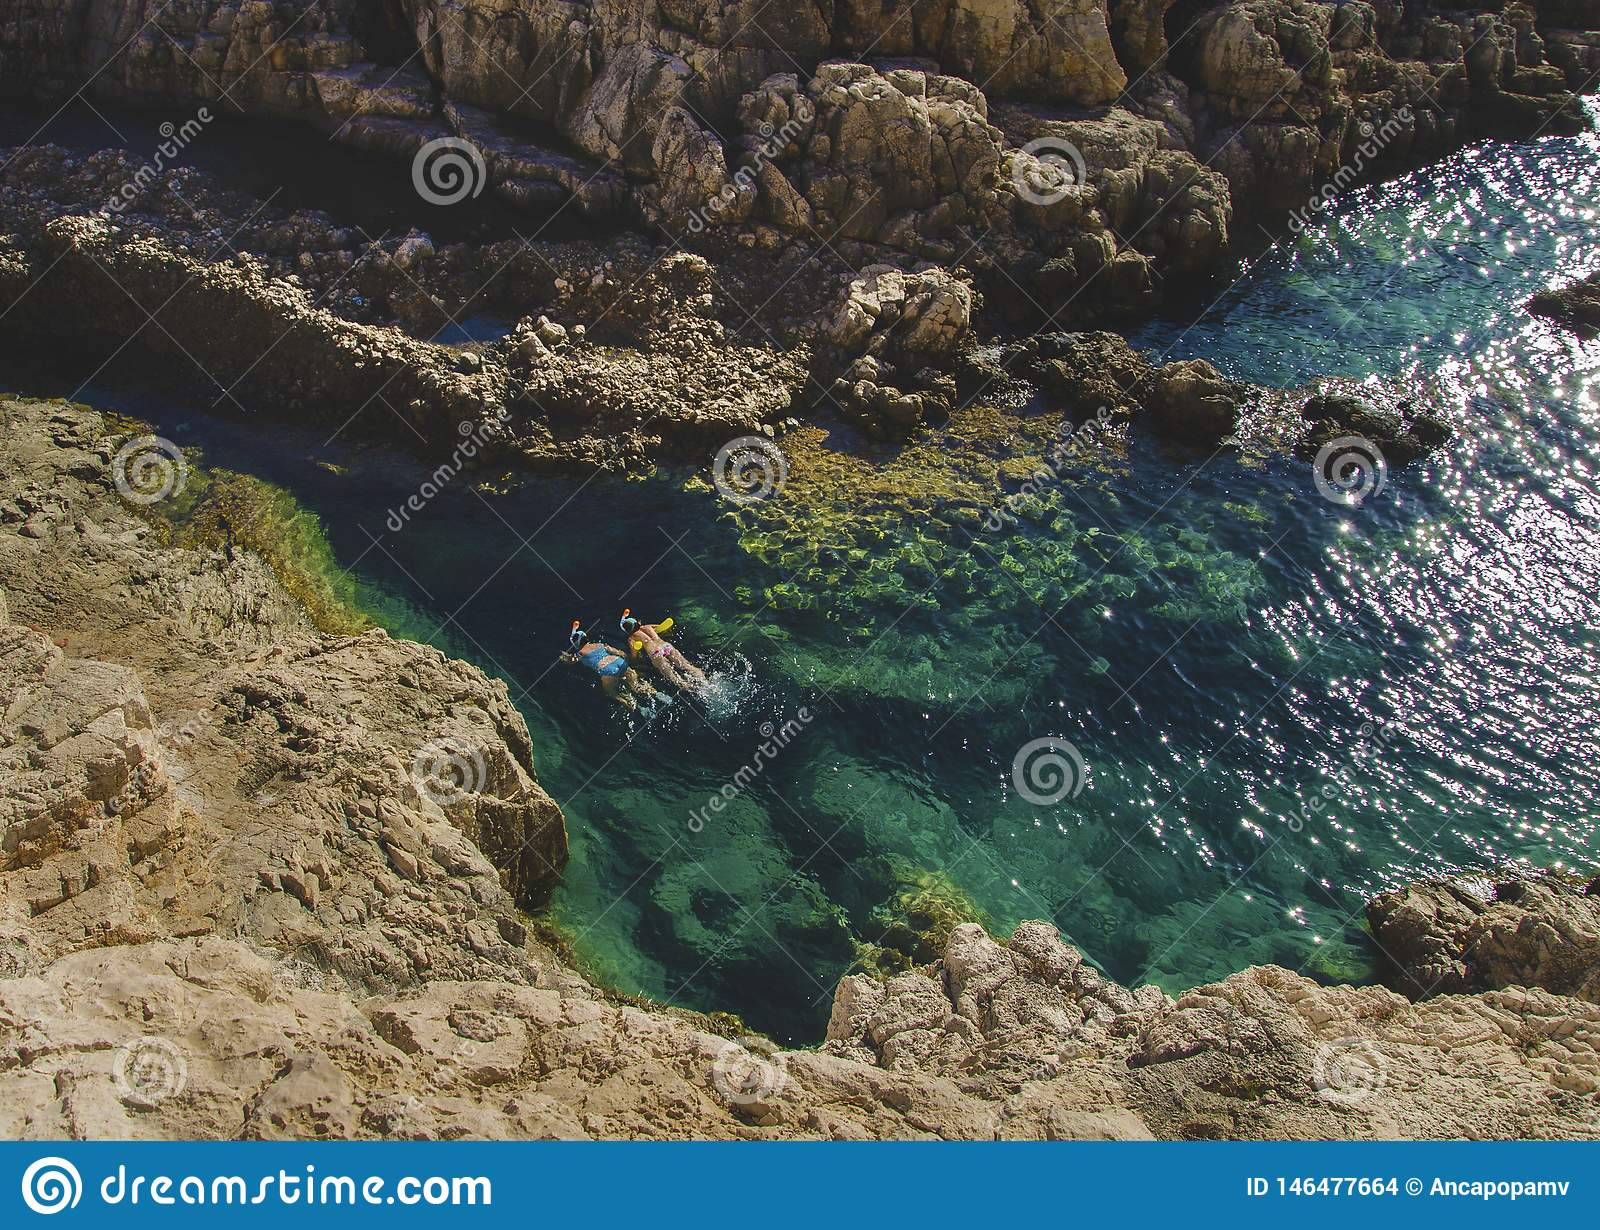 Wo persons swimming and snorkeling in the crystal clear turquoise water in Korakonissi, Zakynthos